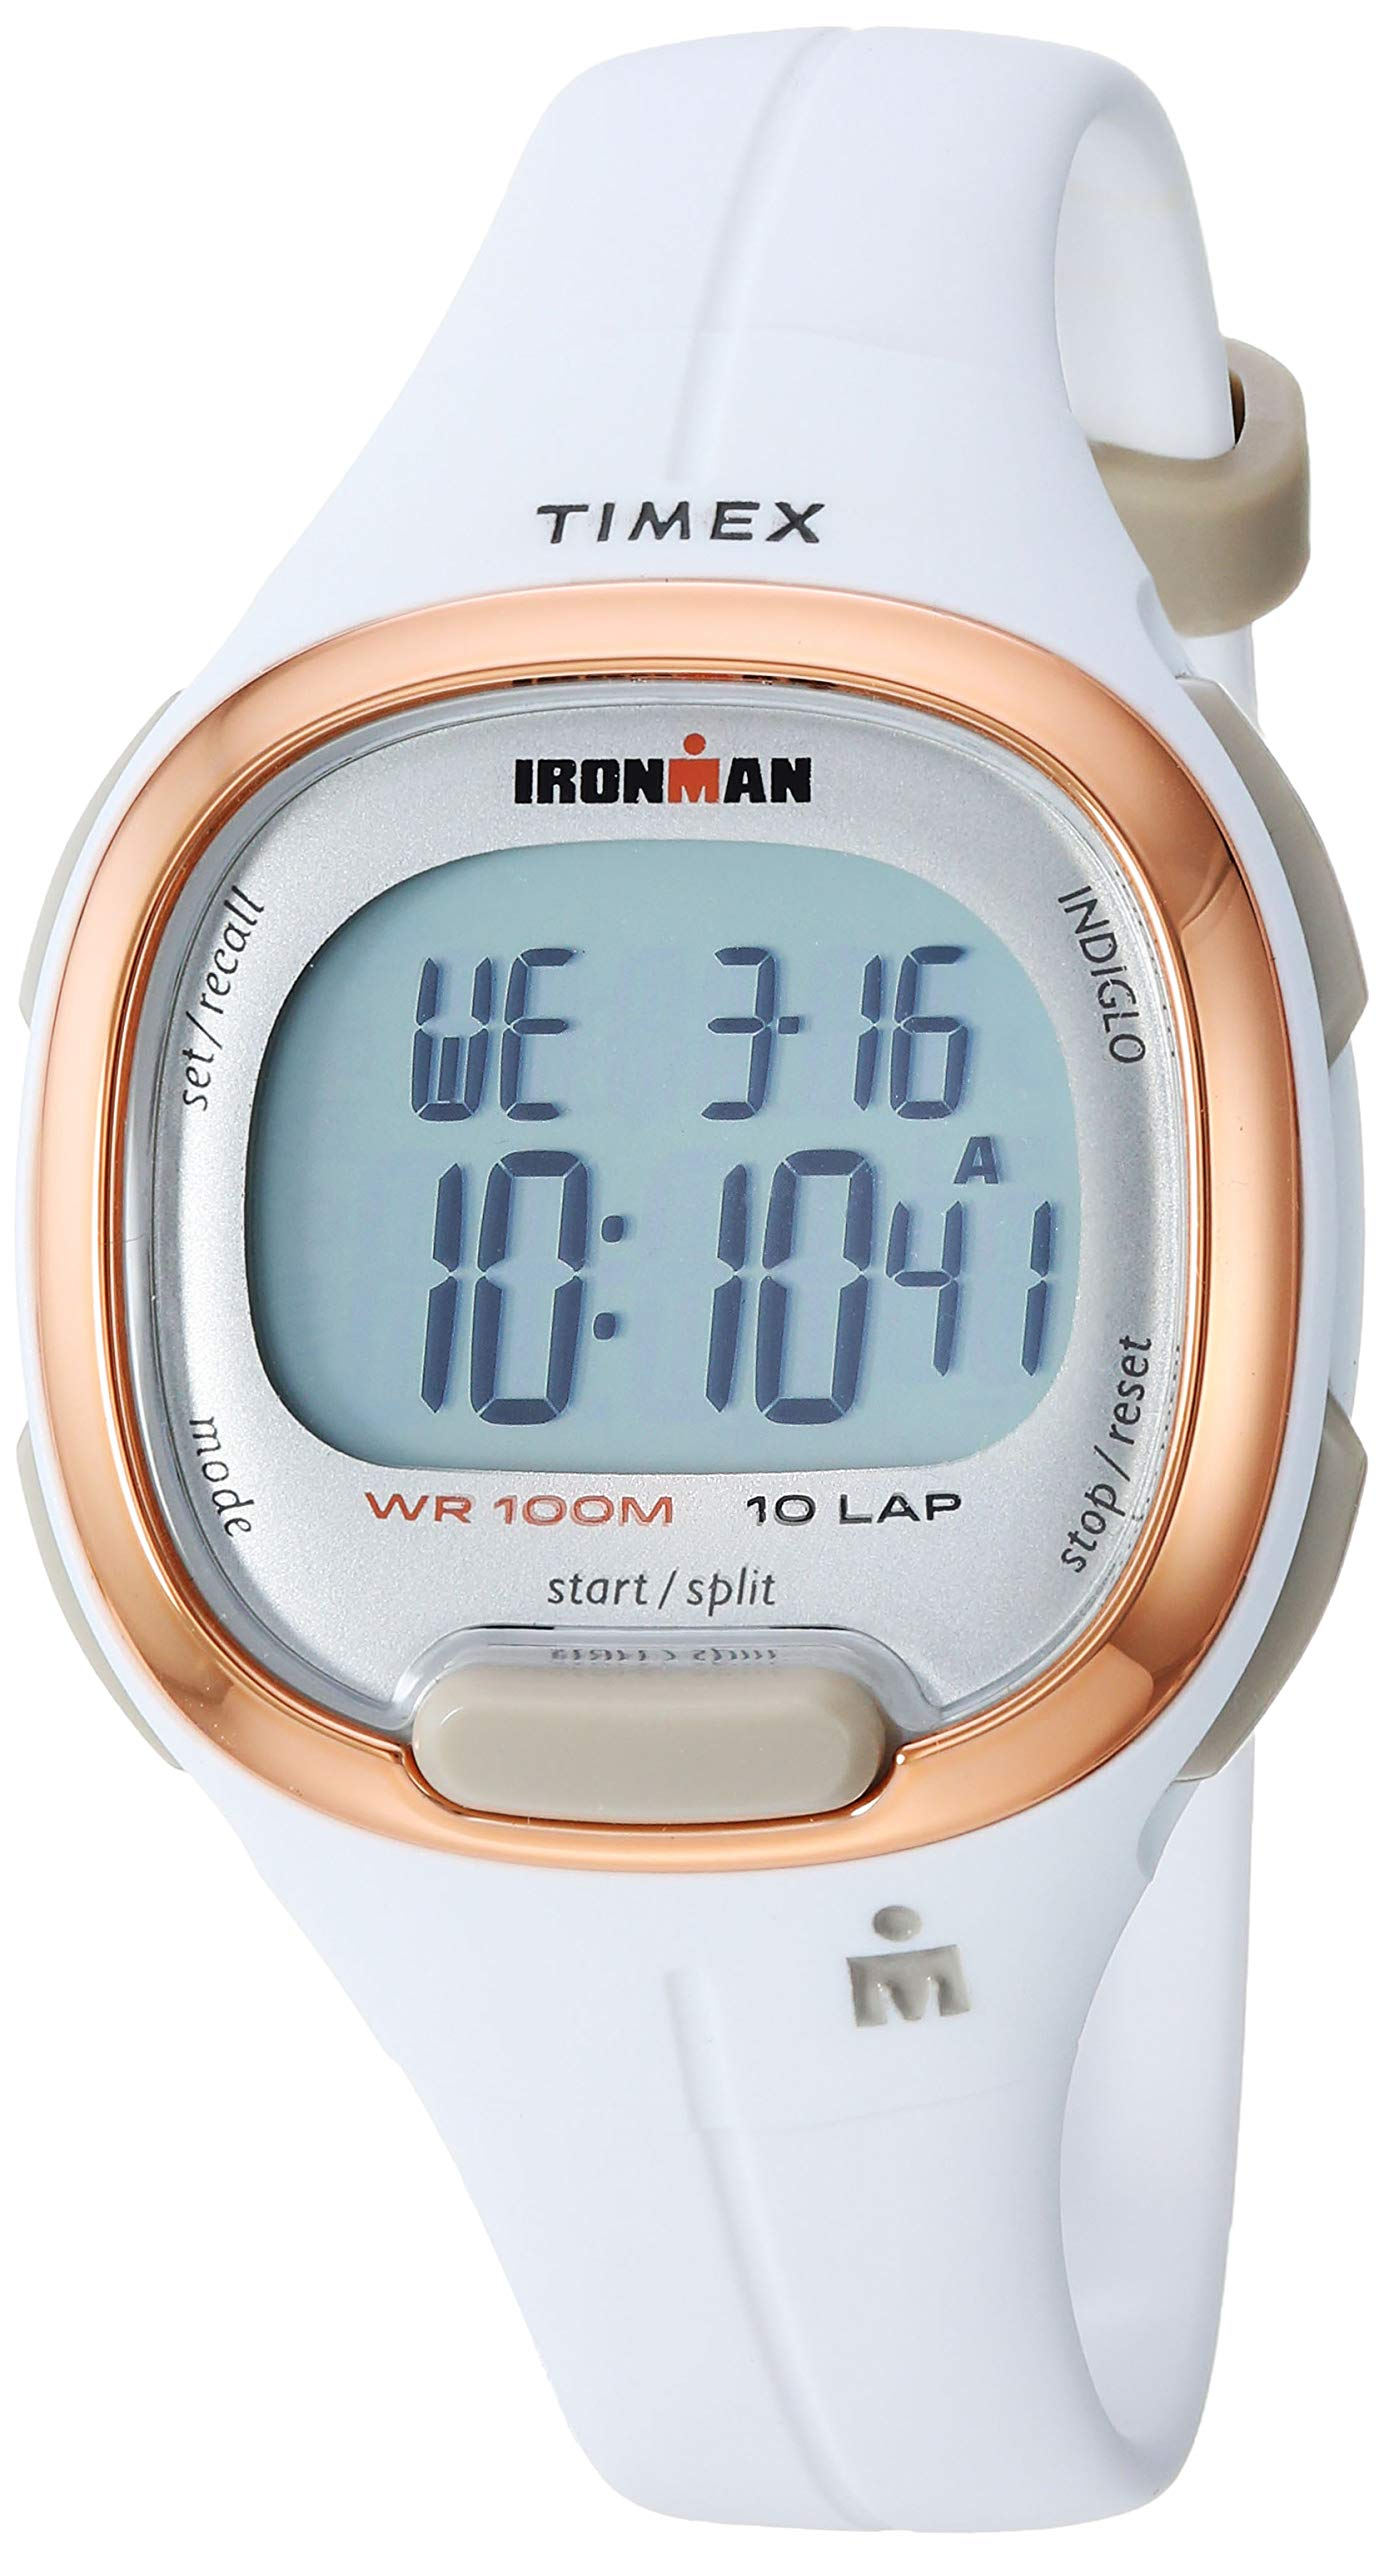 Timex Women's TW5M19900 Ironman Transit Mid-Size White/Rose Gold-Tone Resin Strap Watch by Timex